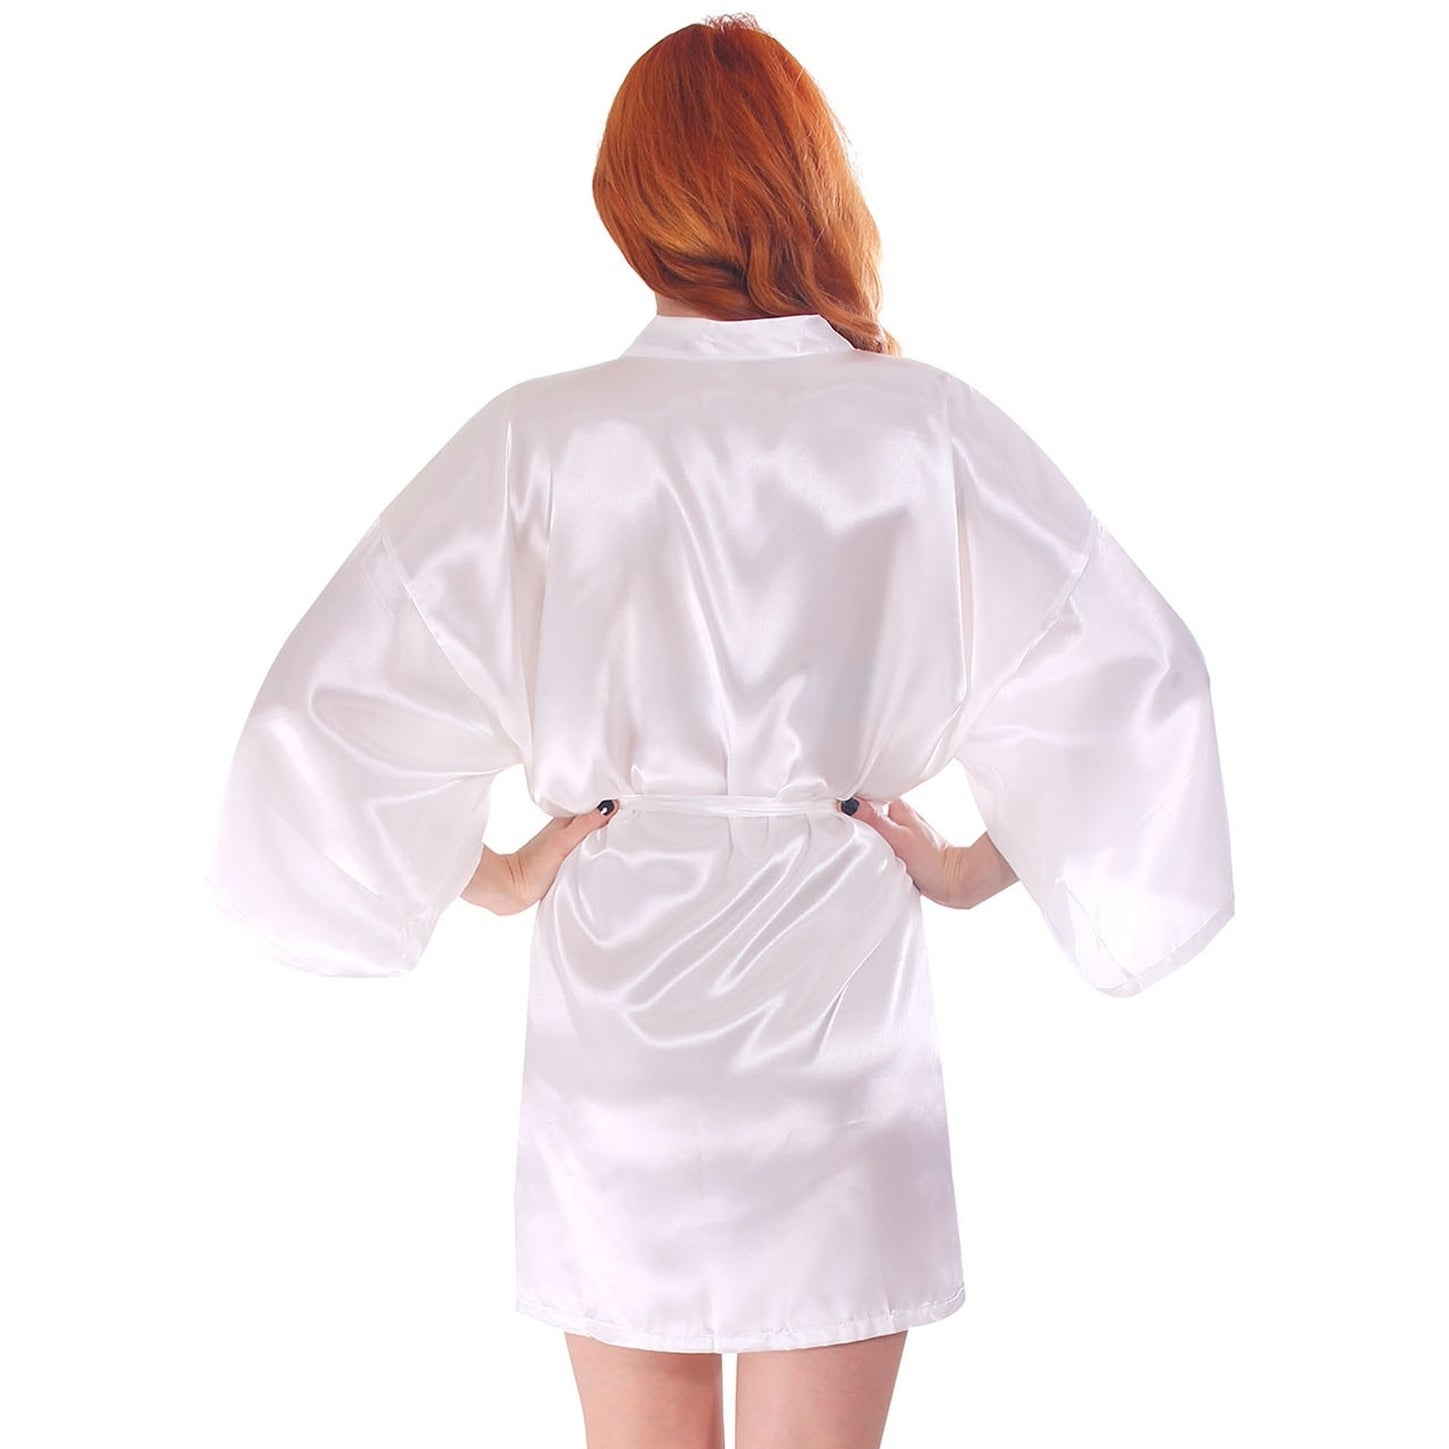 Shop Womens Silk Satin Short Lingerie Bridal Kimono Robe On Sale Mom N Bab Shirt White Red Stripe Free Shipping Orders Over 45 18128575